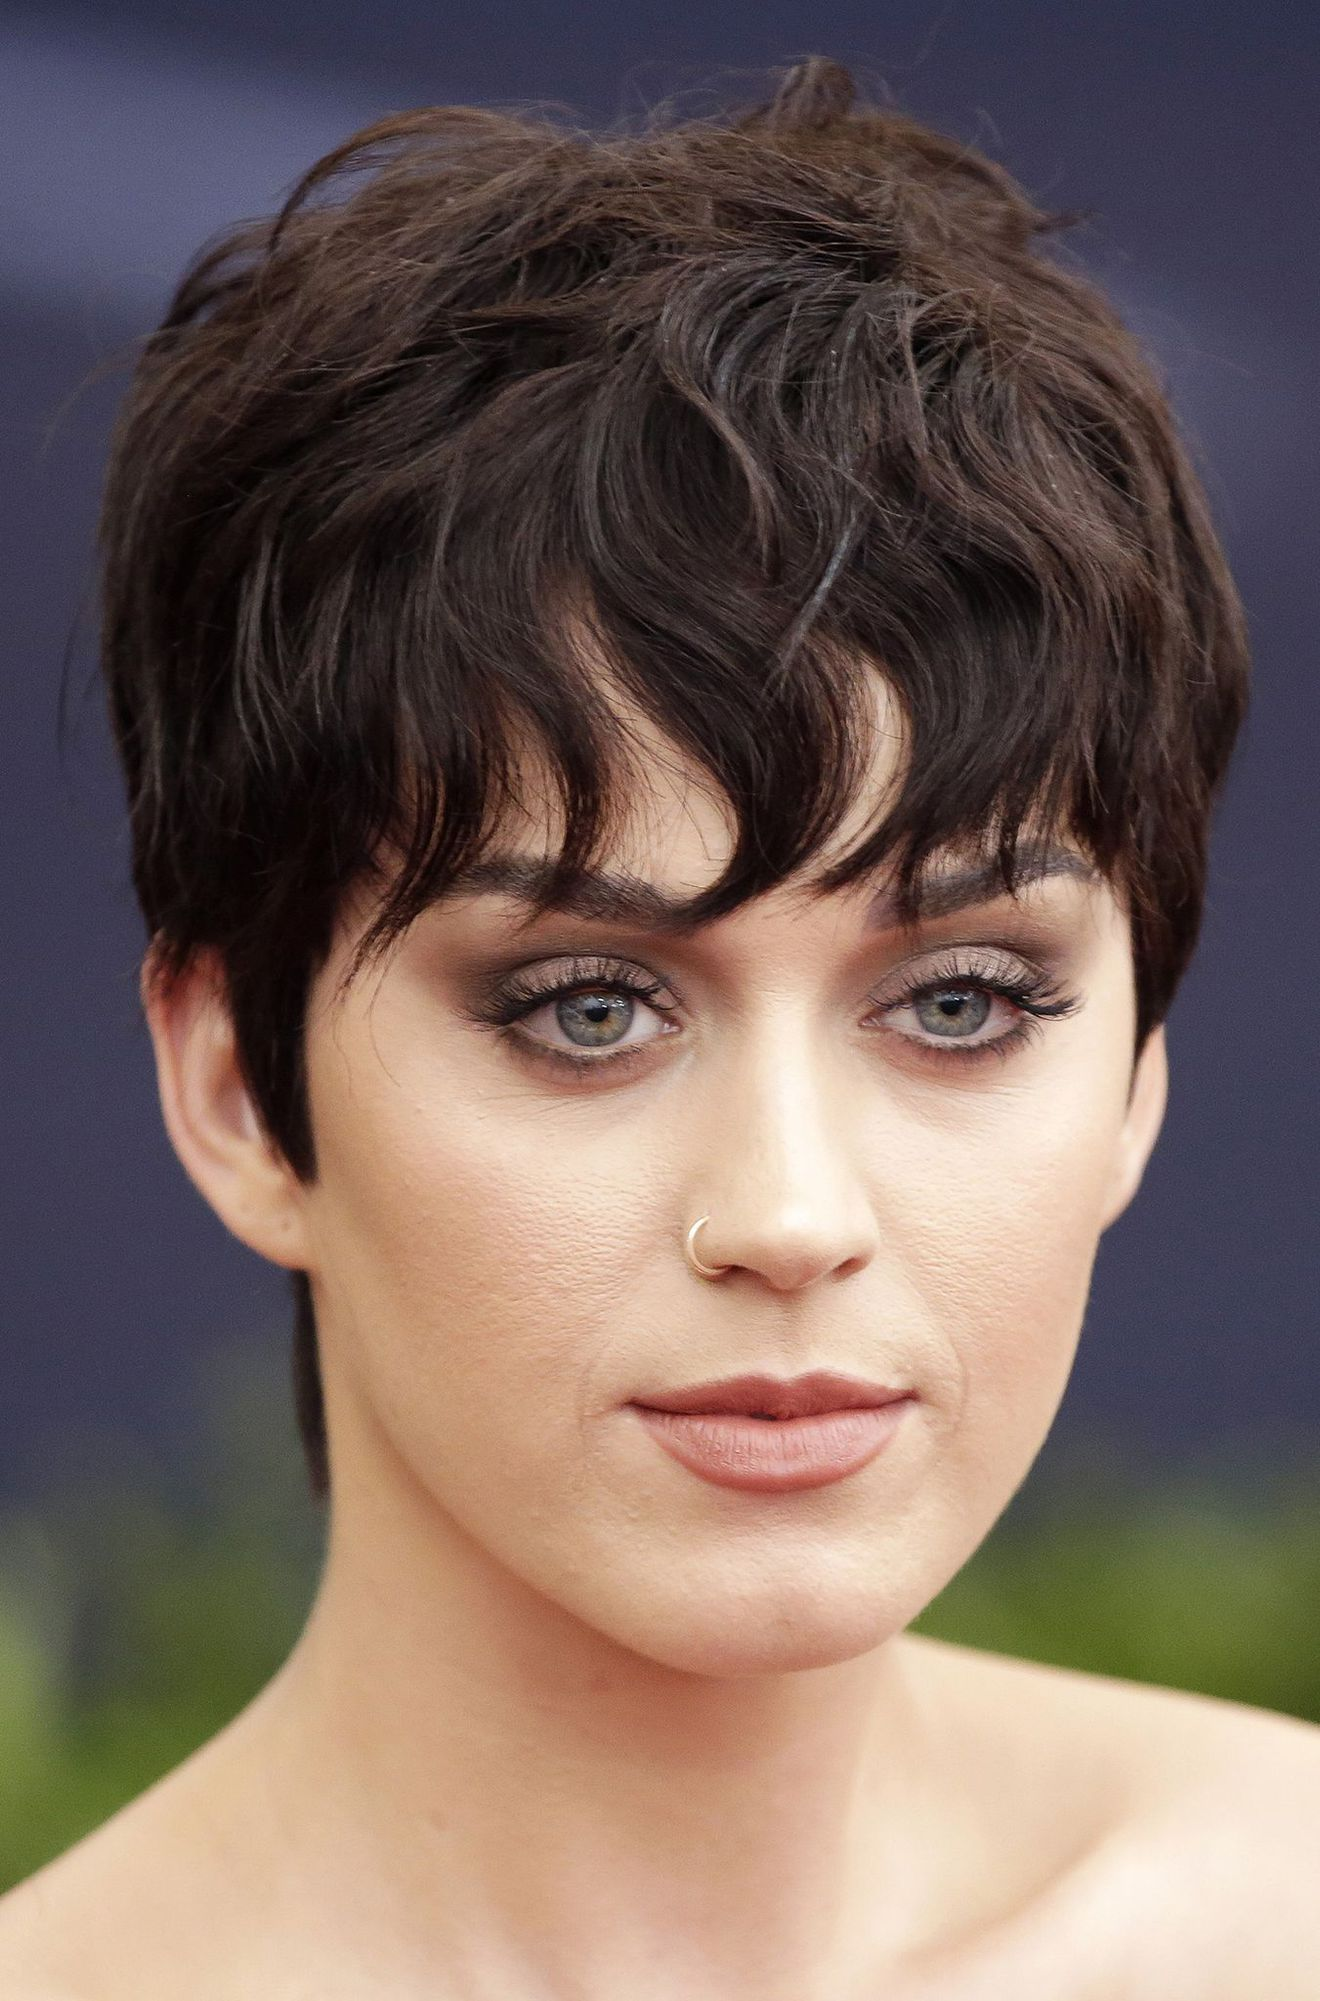 imagesCoupe-cheveux-court-19.jpg